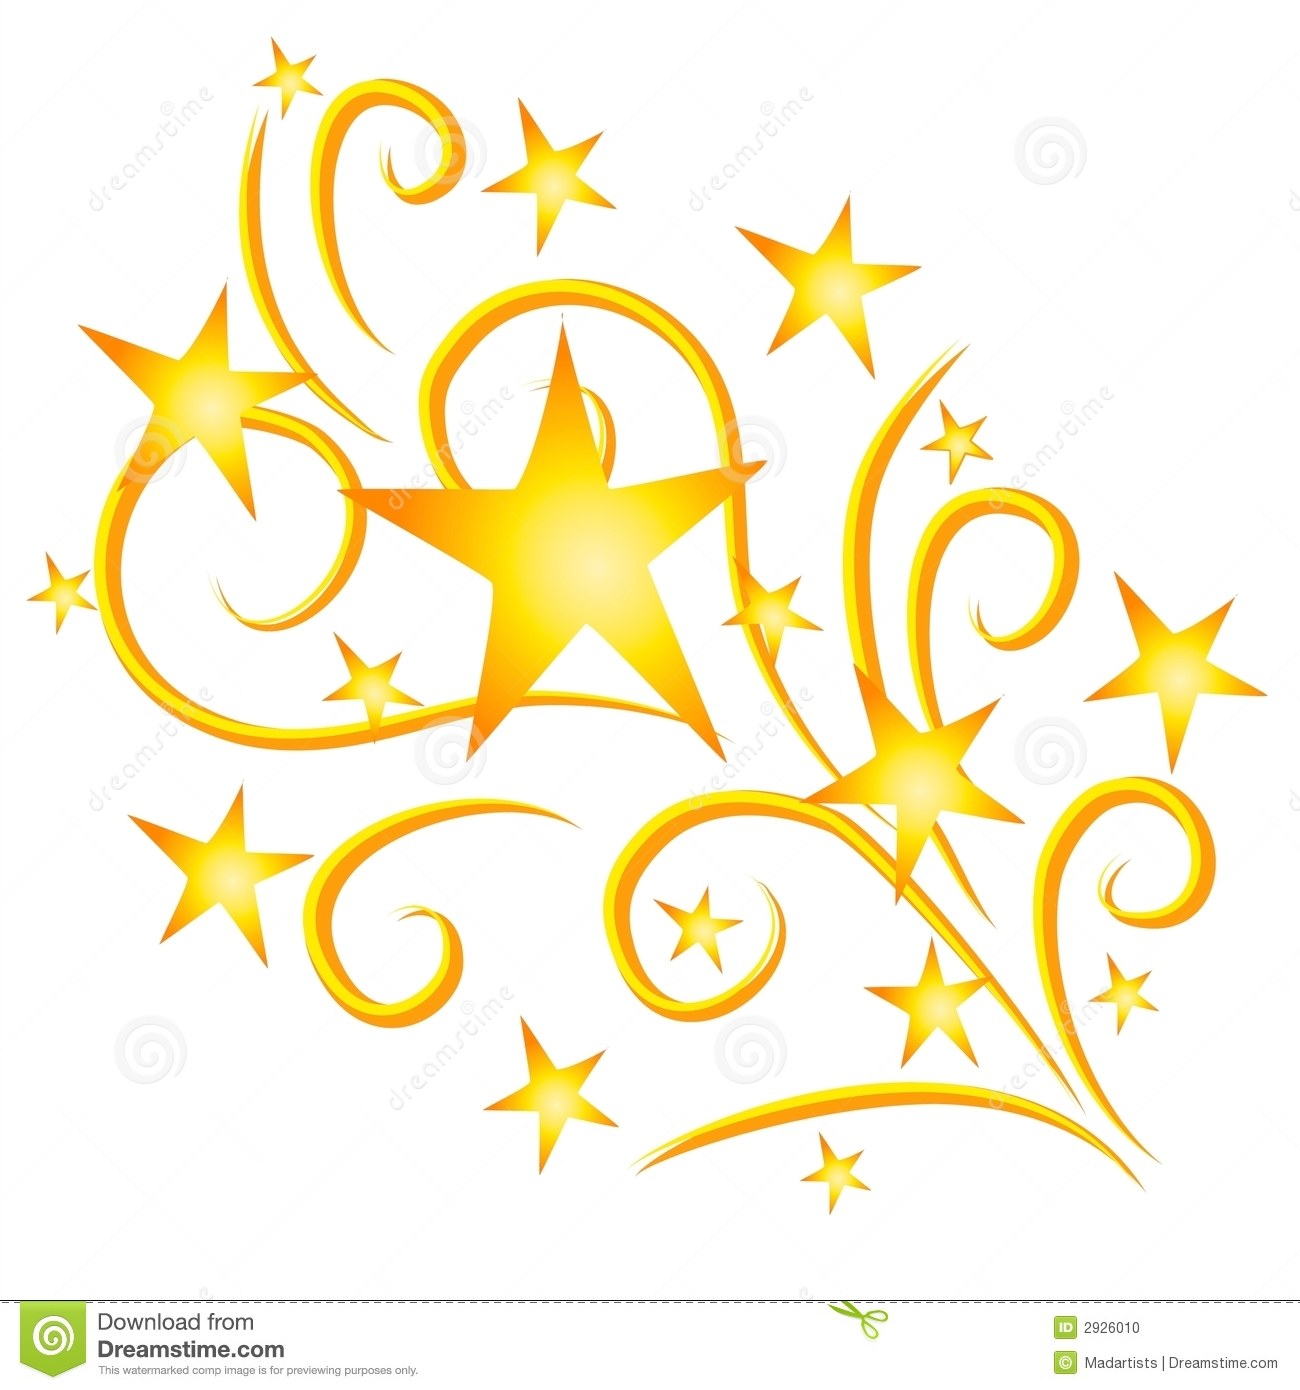 301 Shooting Stars free clipart.